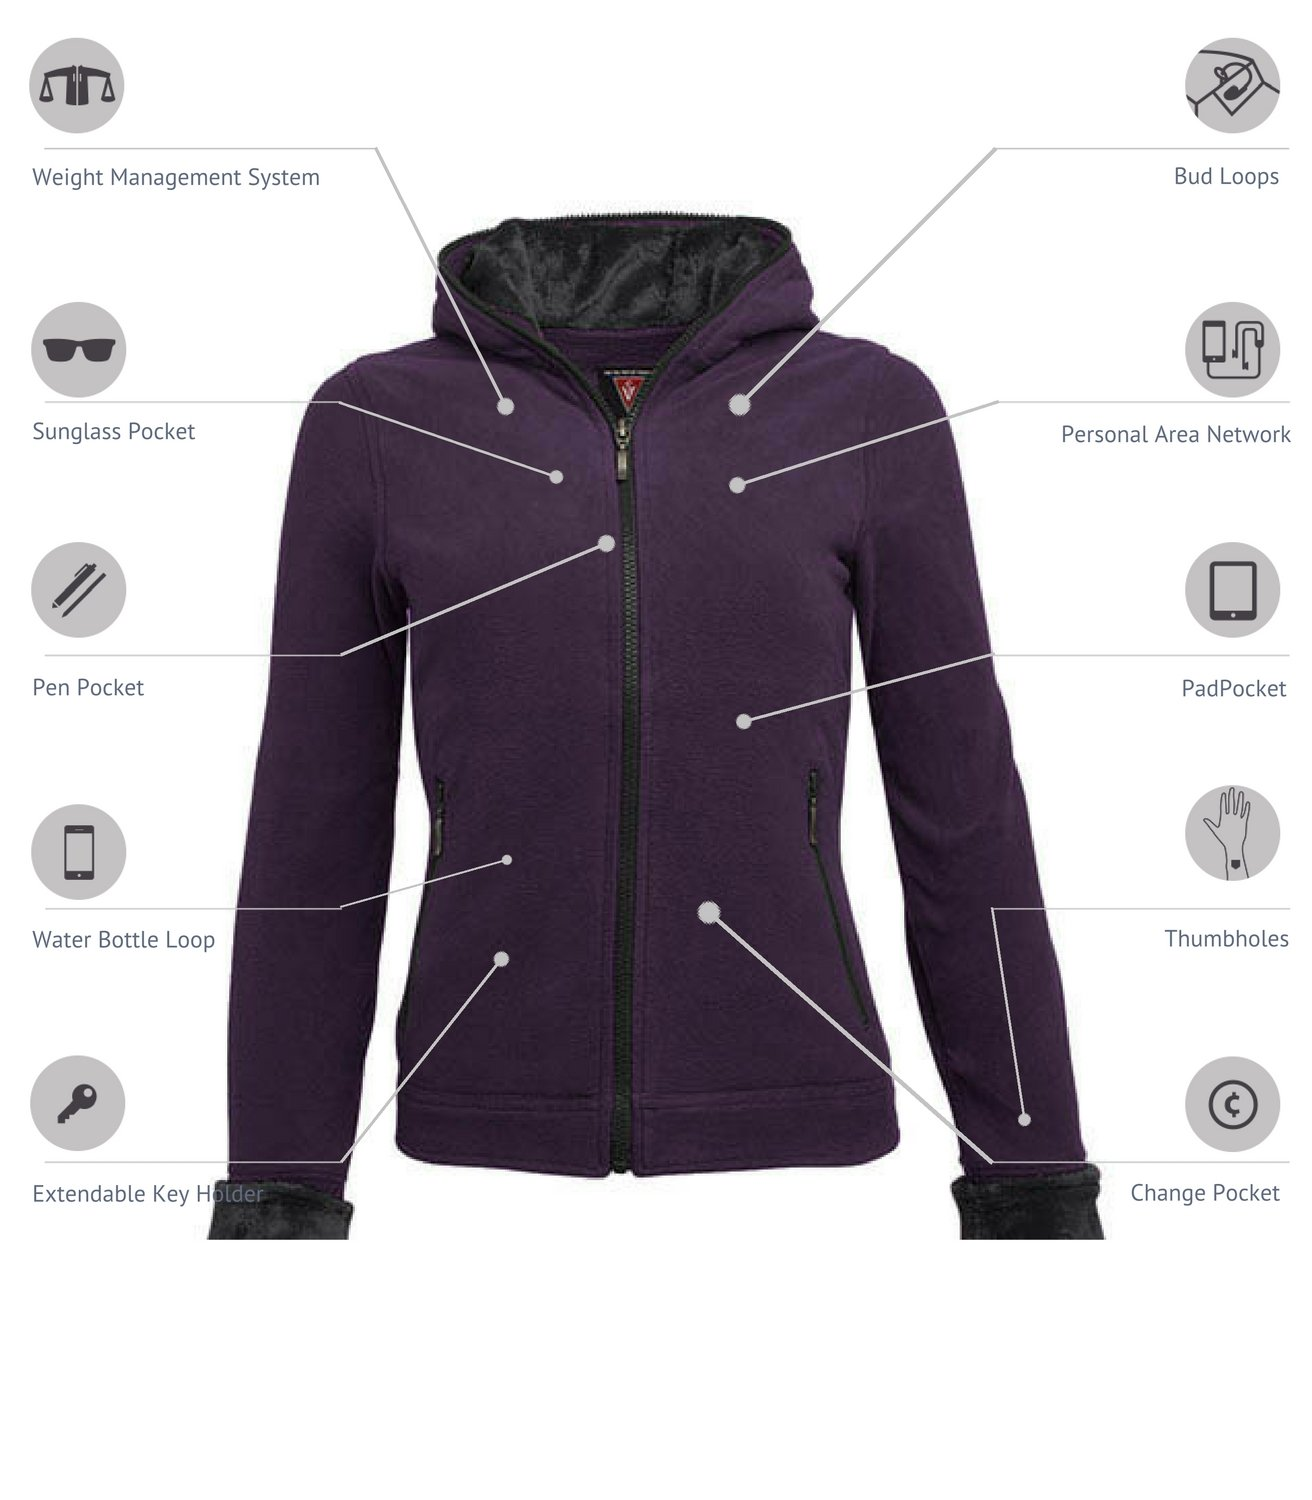 SCOTTeVEST Chloe Hoodie - 14 Pockets - Travel Clothing, Pickpocket Proof DAR XL by SCOTTeVEST (Image #2)